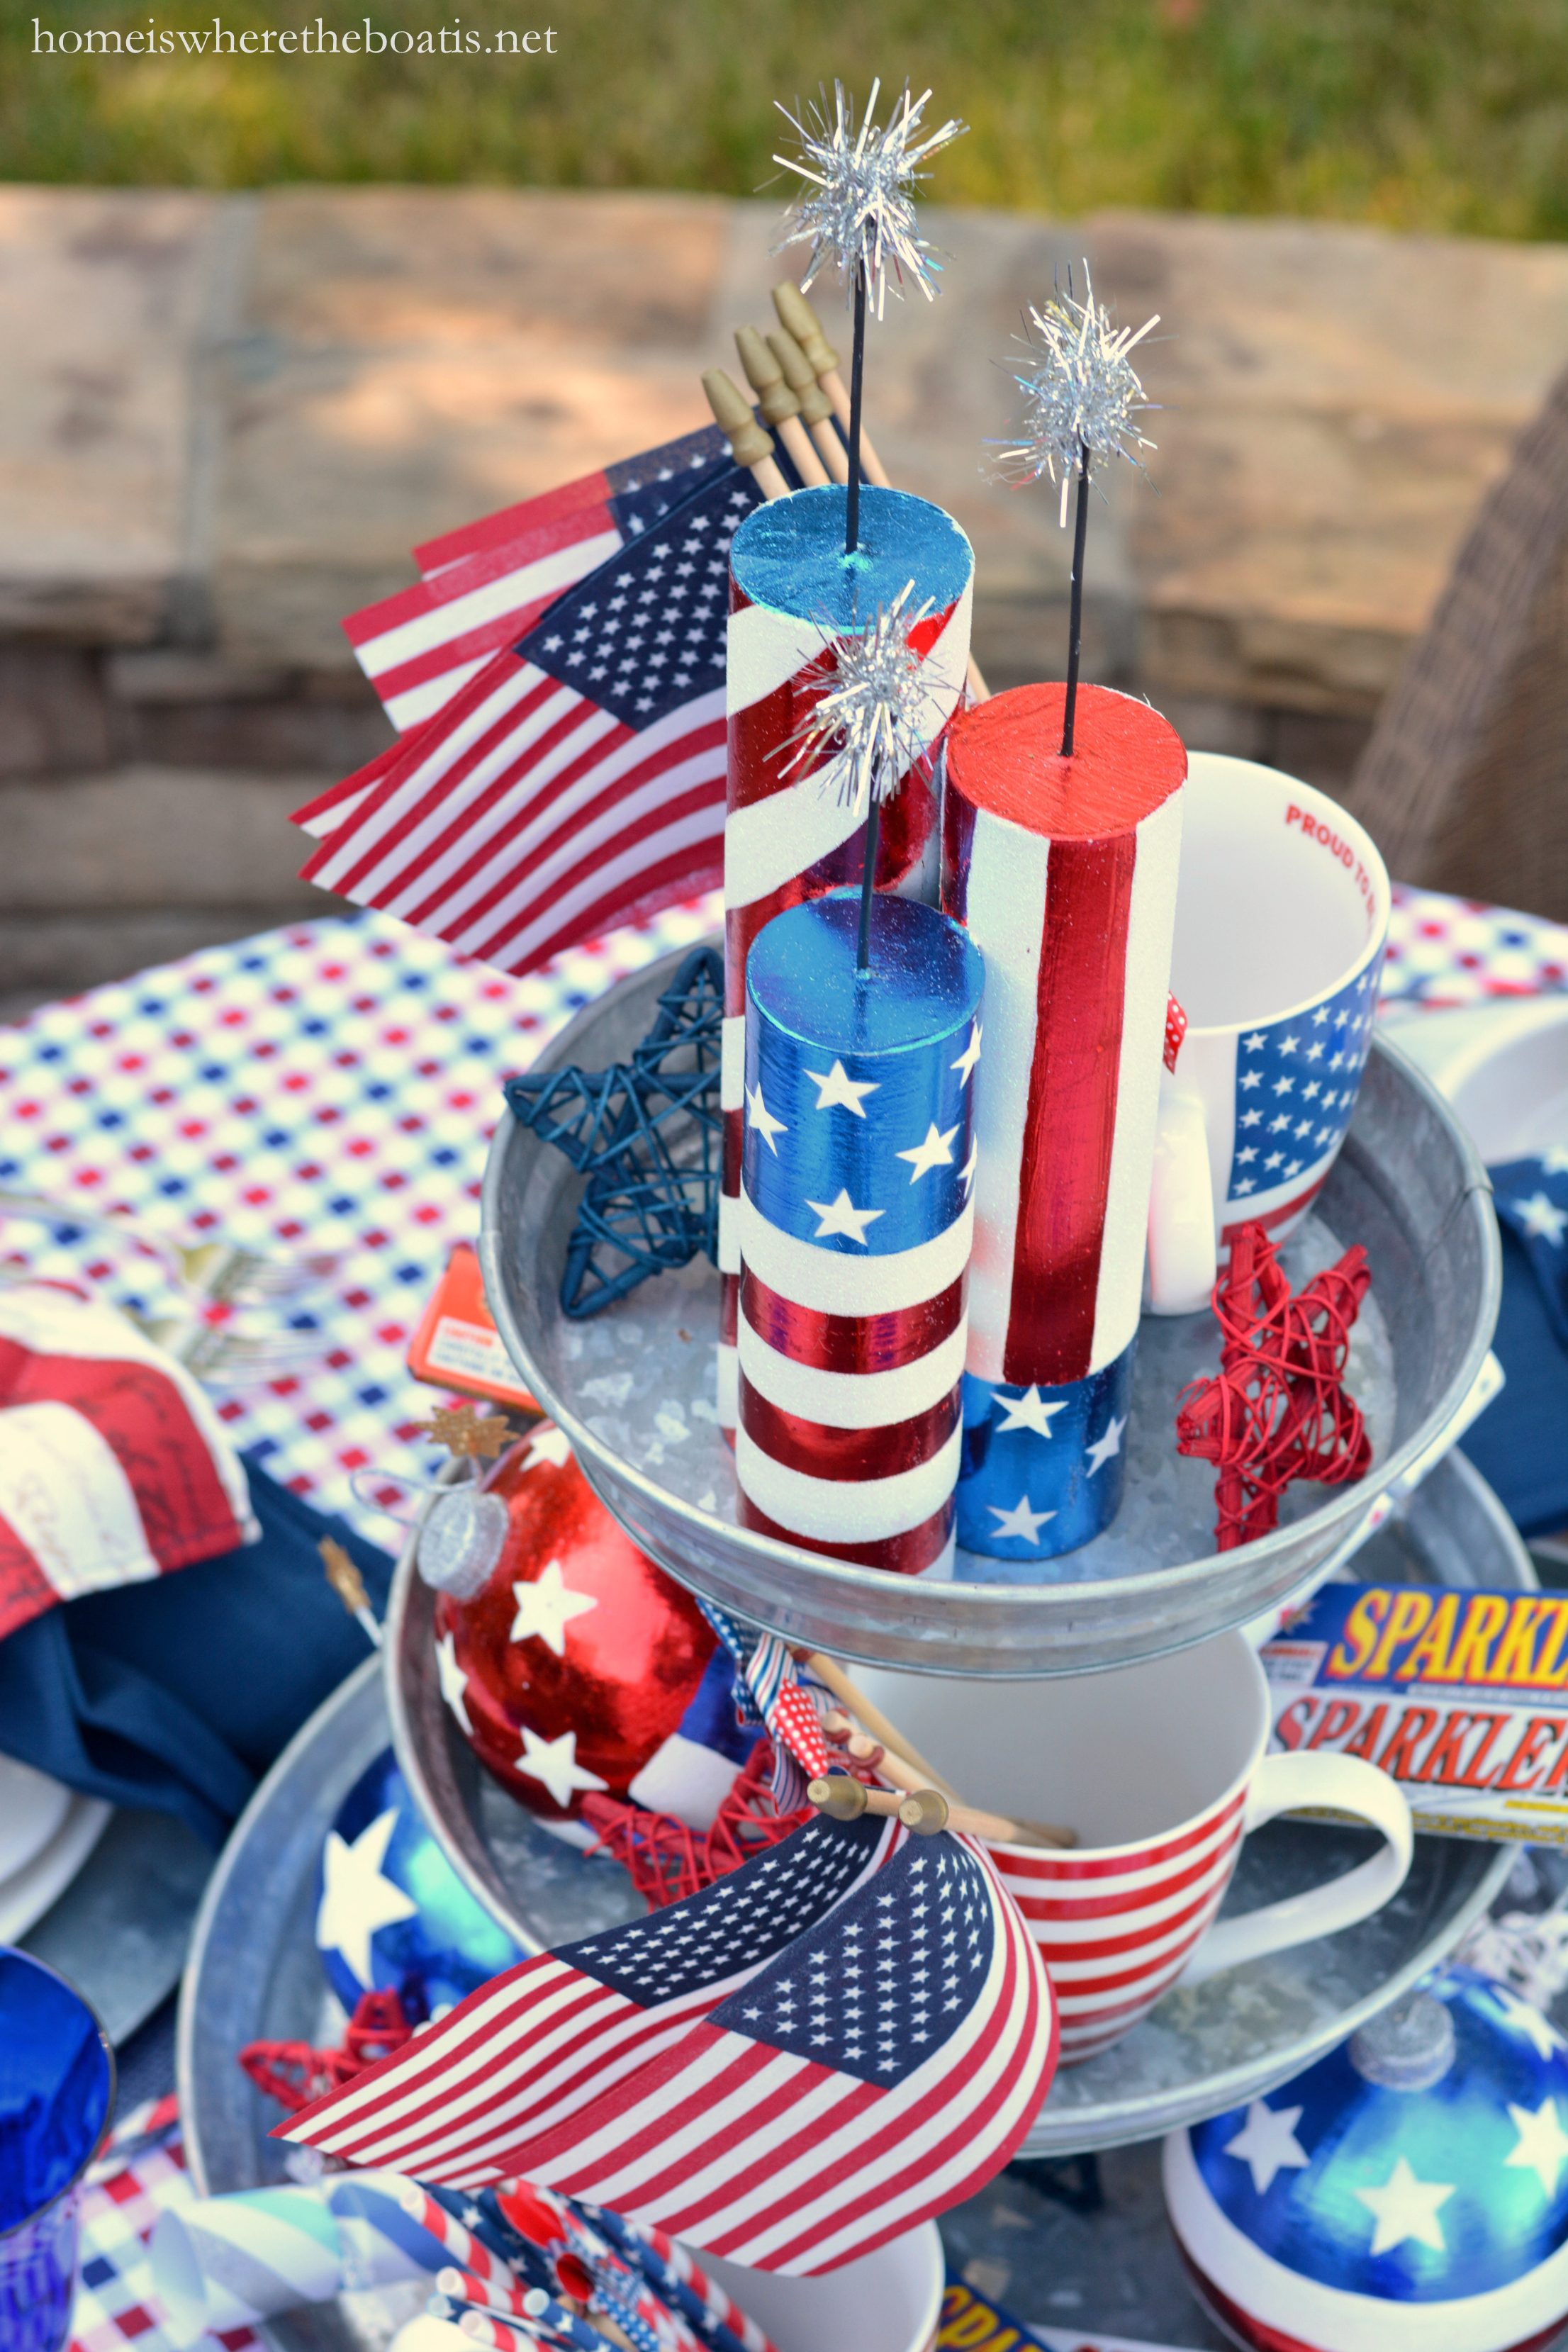 ... conventional round shape rounded corners of Pfaltzgraff Filigree square dishes make it easy to mix and match with the round Filigree dinnerware pieces. & Celebrate the Red White and Boom Patriotic Table with Pfaltzgraff ...